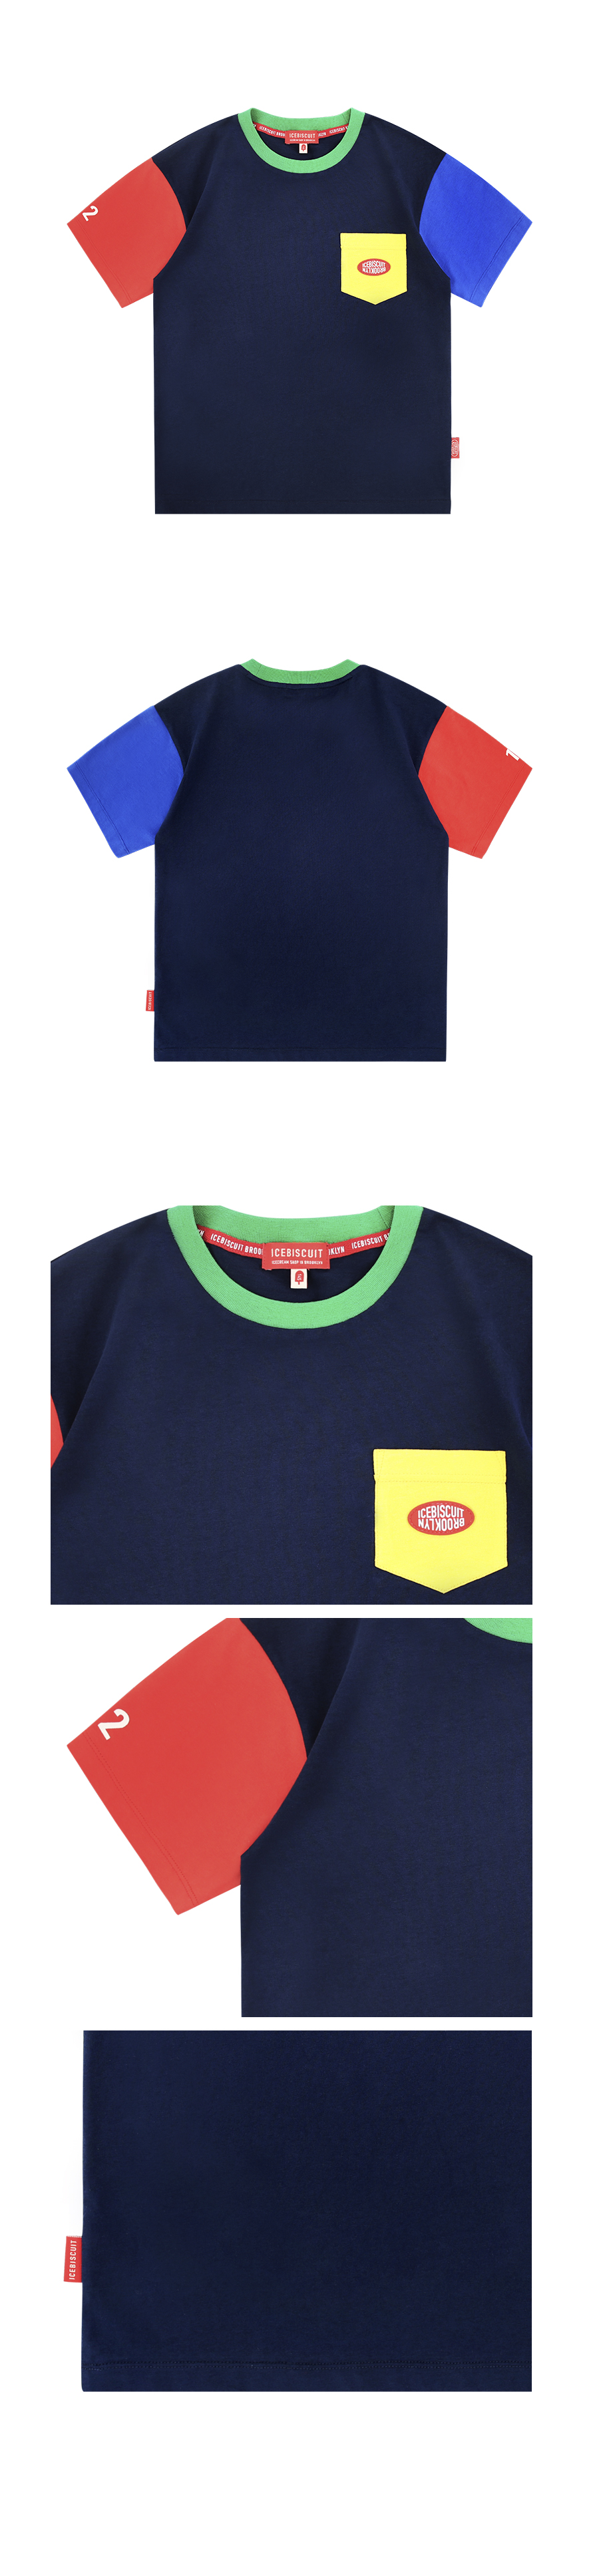 Icebiscuit logo patch color block t-shirt 상세 이미지